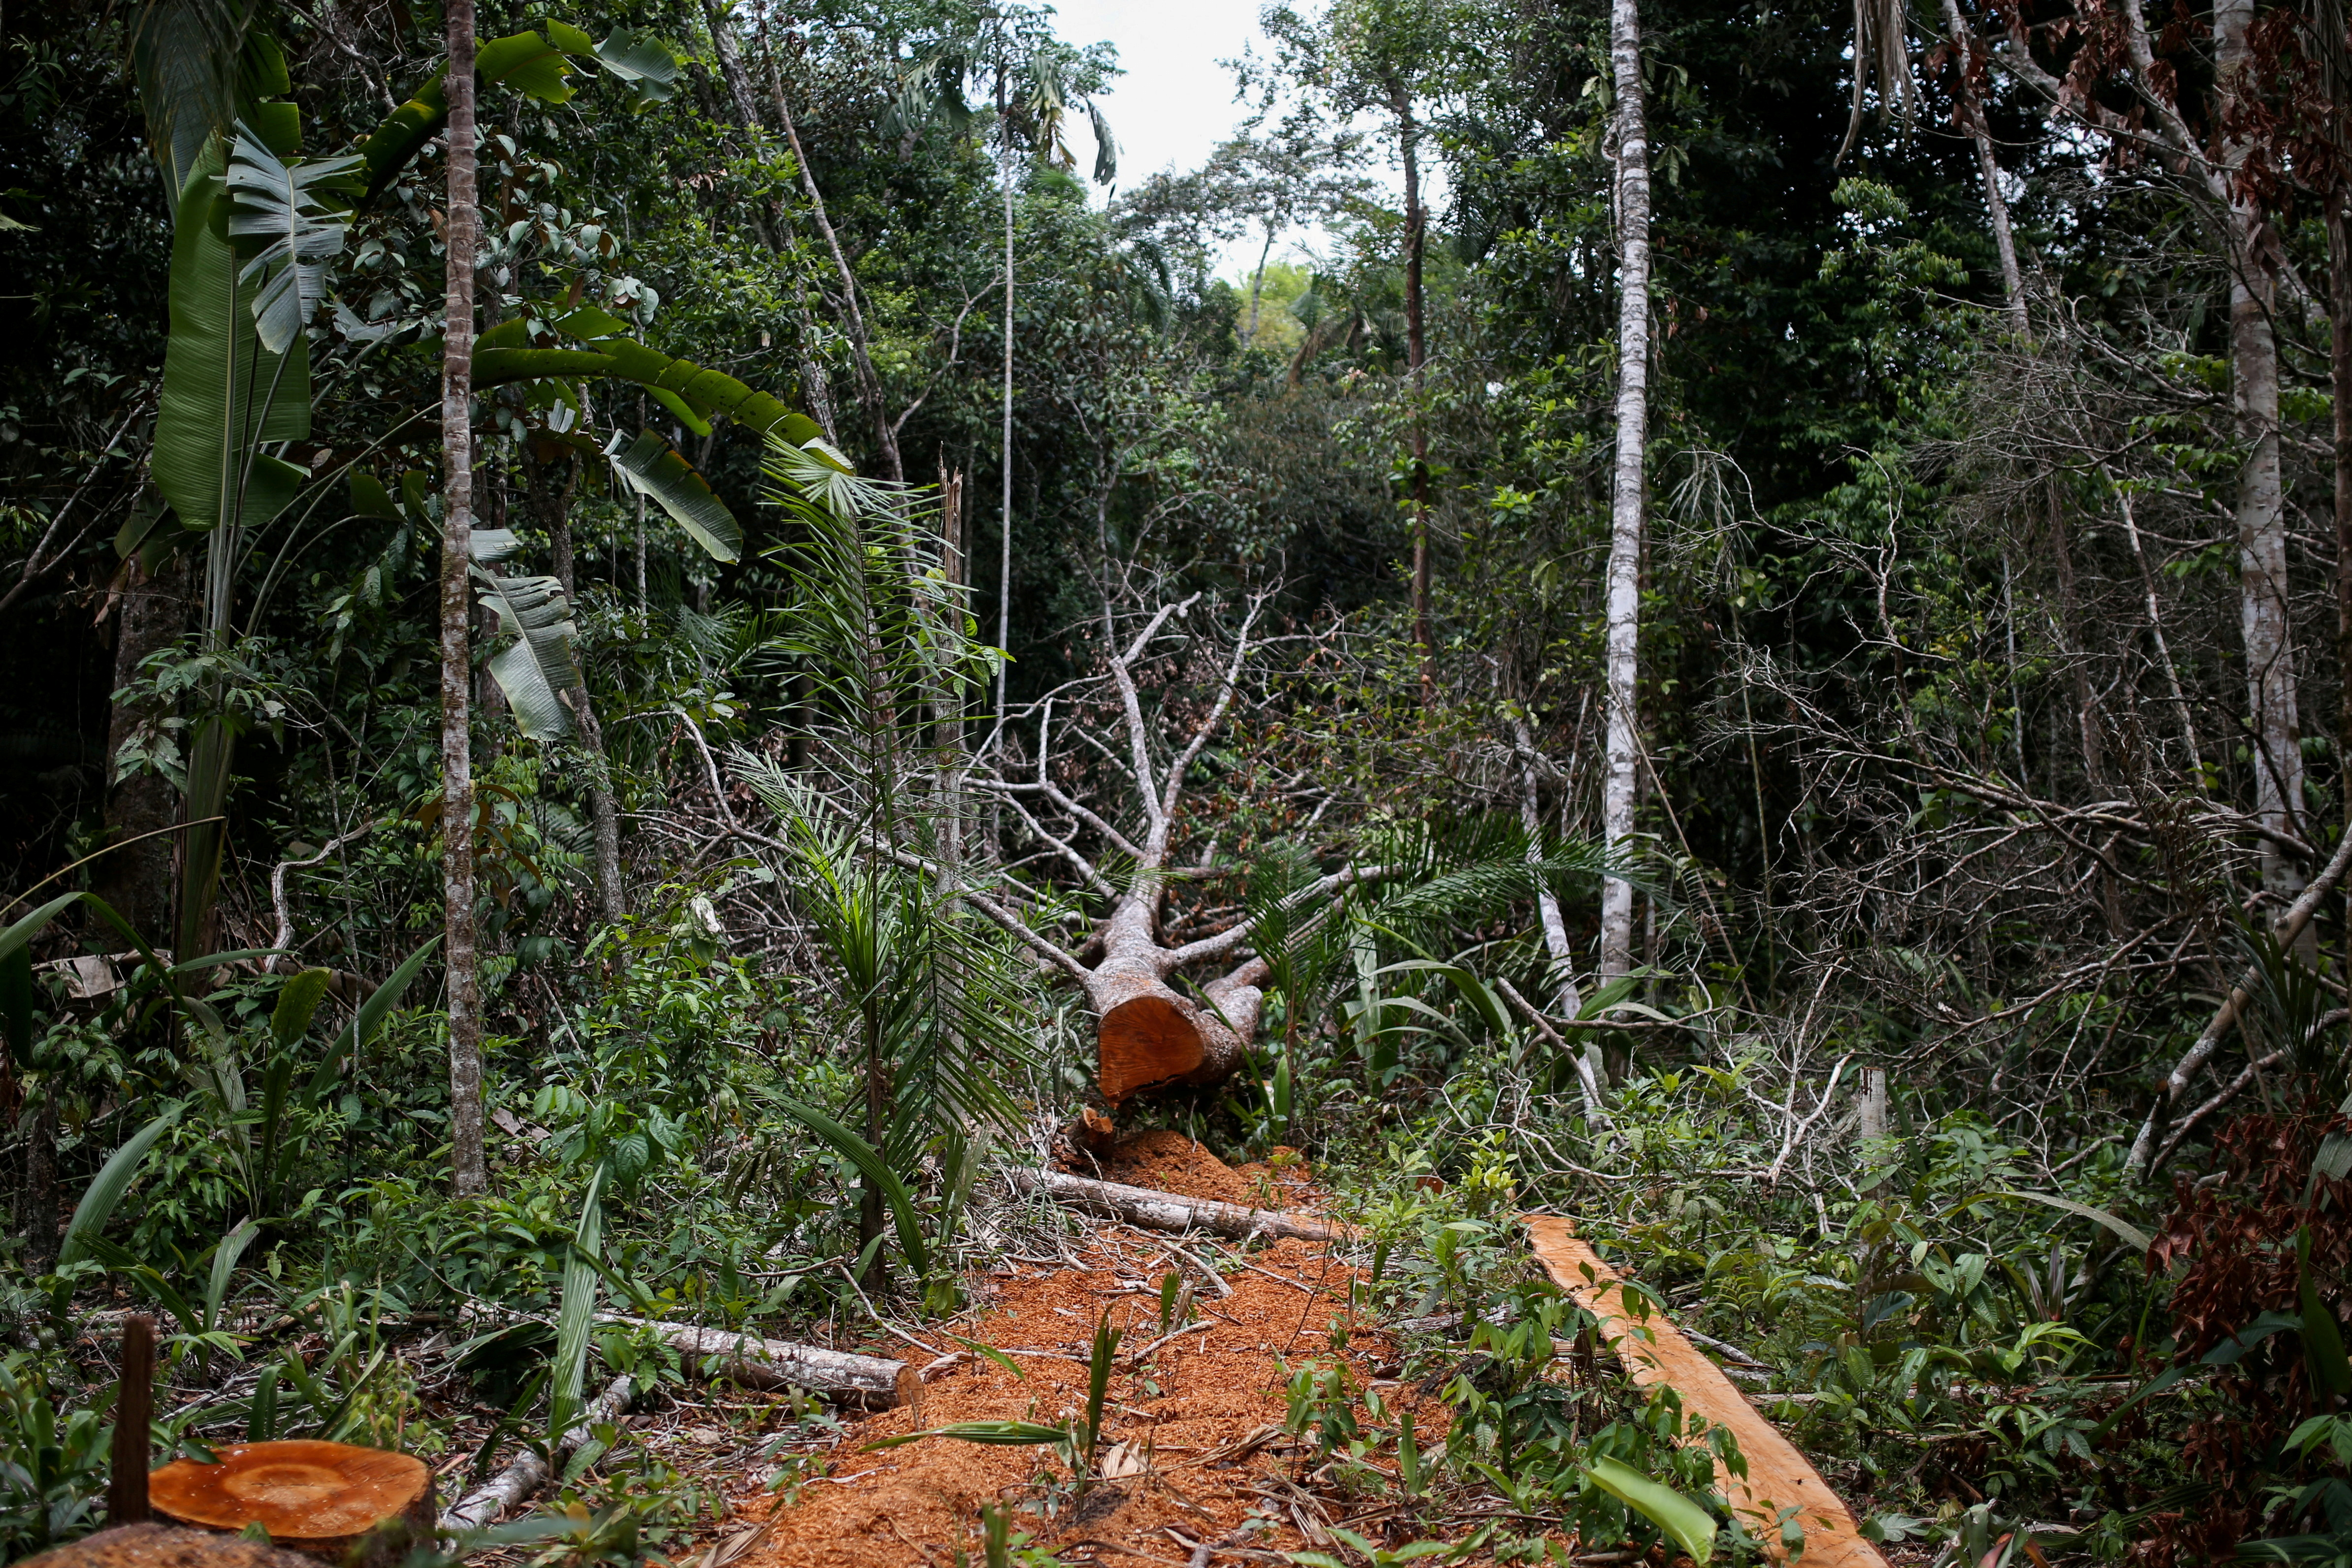 Some 30% of global tree species at risk of extinction - report